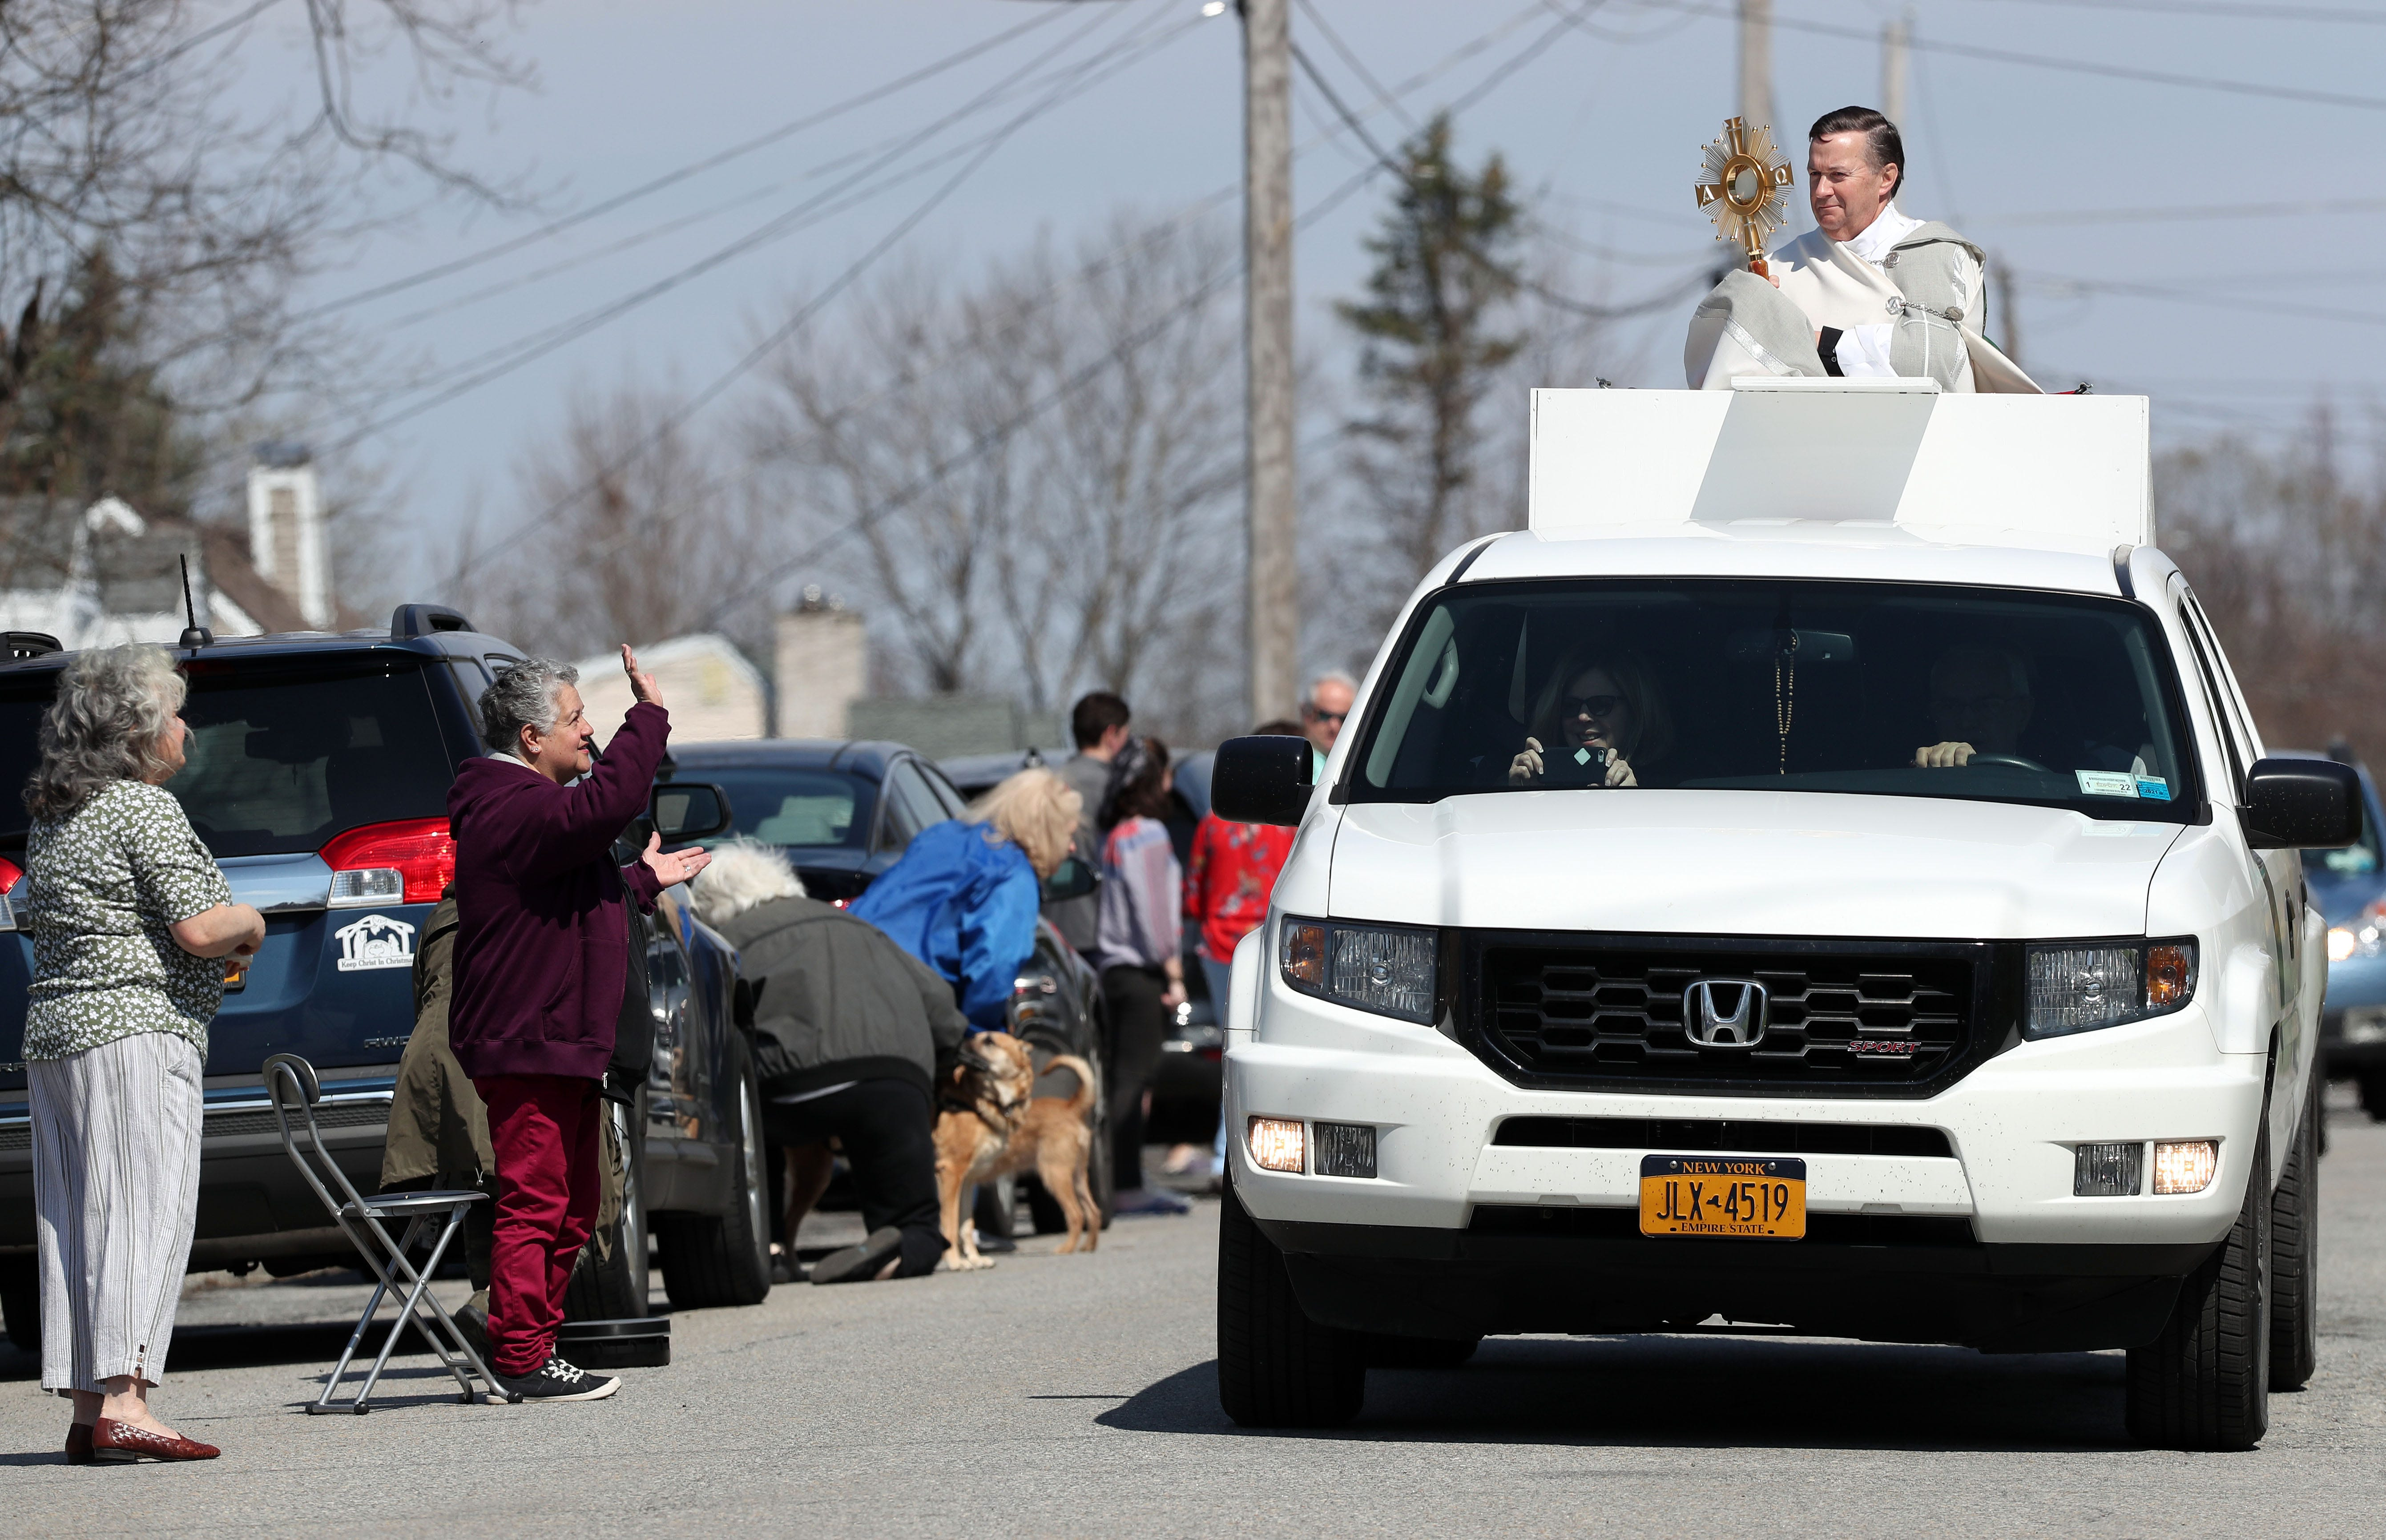 Spiritual leaders took creative measures to mark the holiest days of the year. Saint Lawrence O'Toole Church's pastor, Rev. Richard Gill, is shown here riding in the back of a big SUV in Brewster on Easter Sunday, blessing those who line the streets.